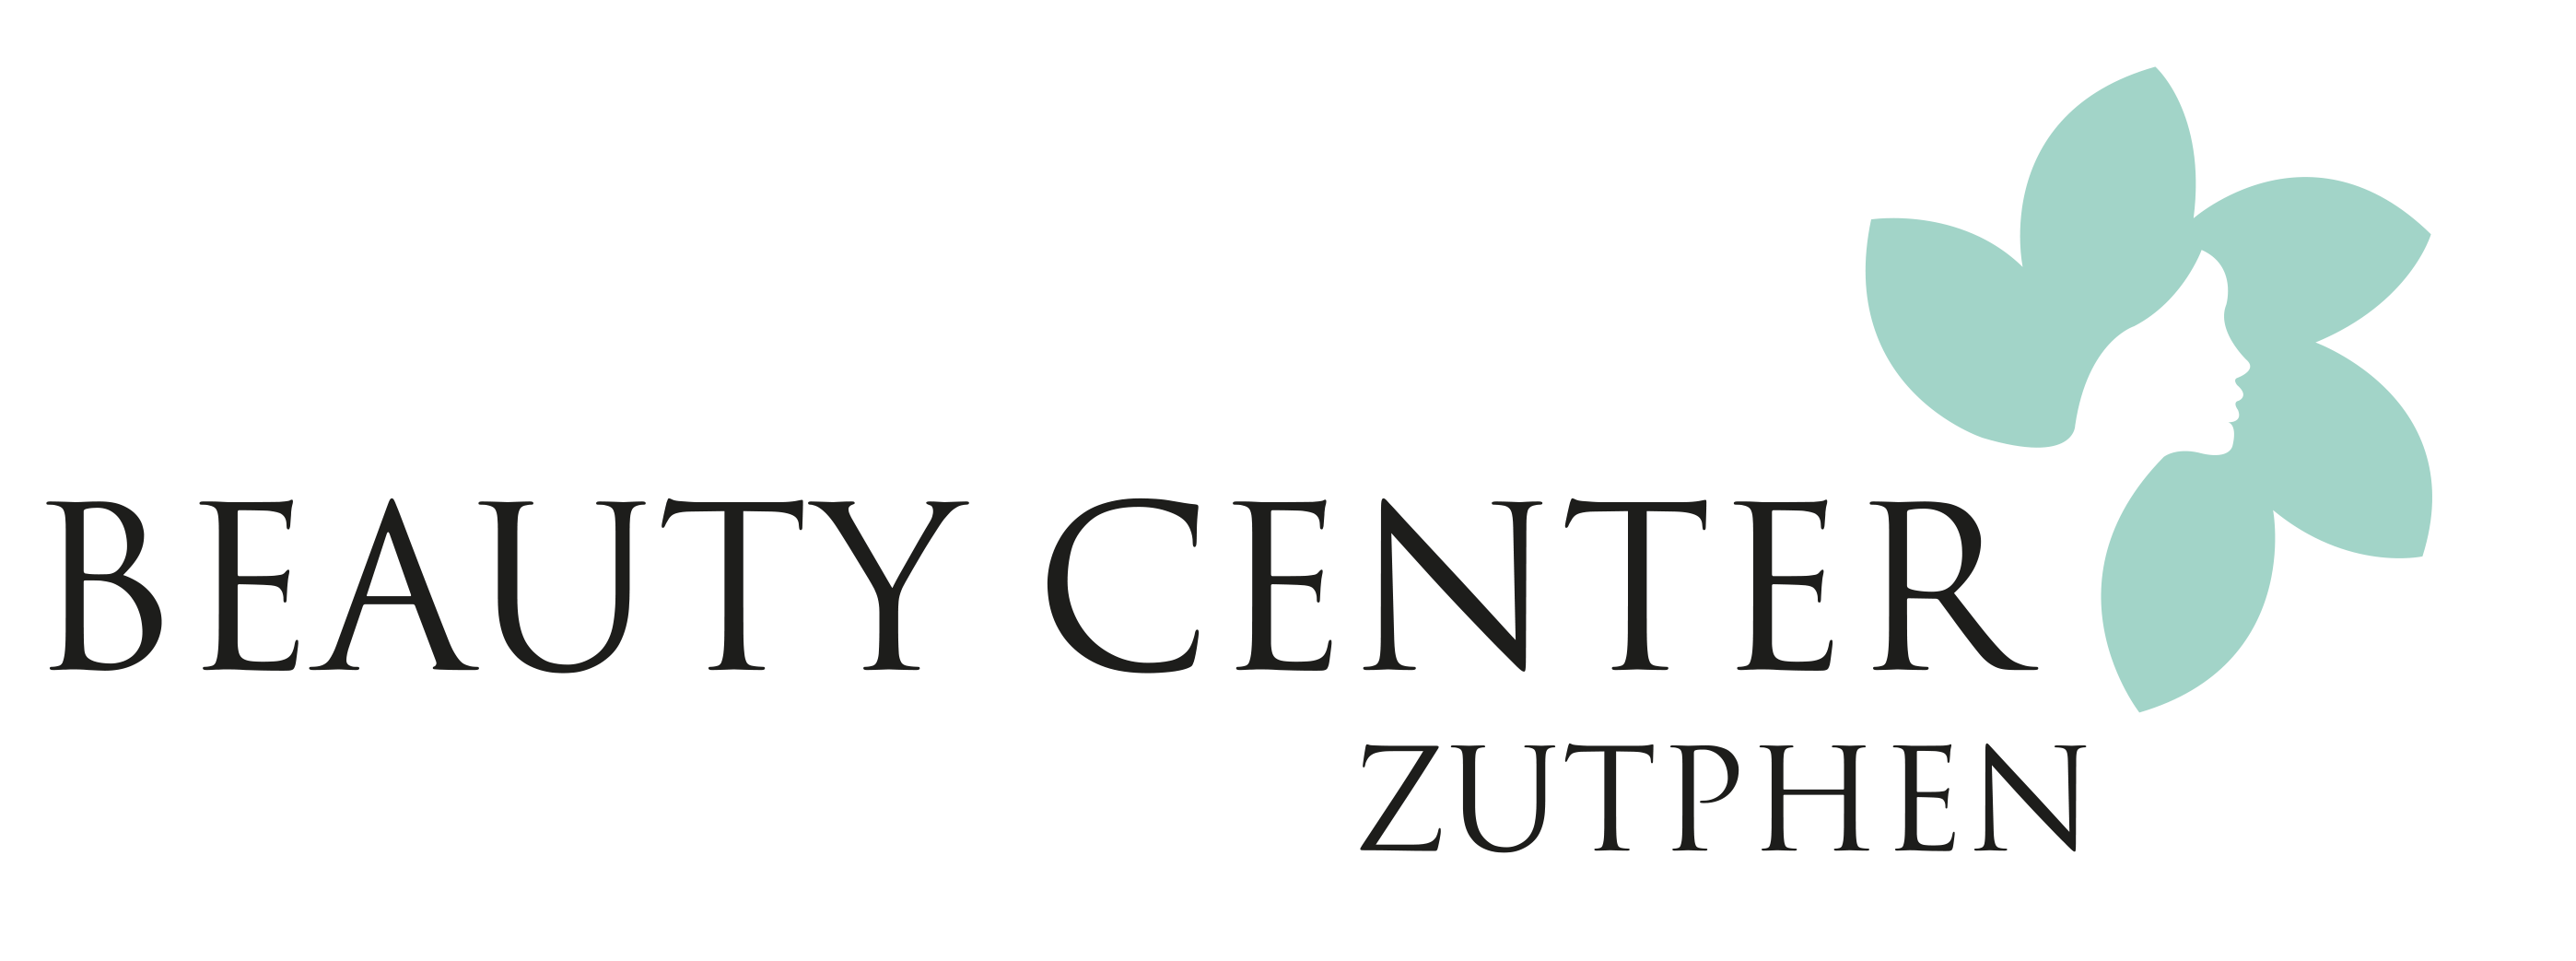 Beauty Center Zutphen